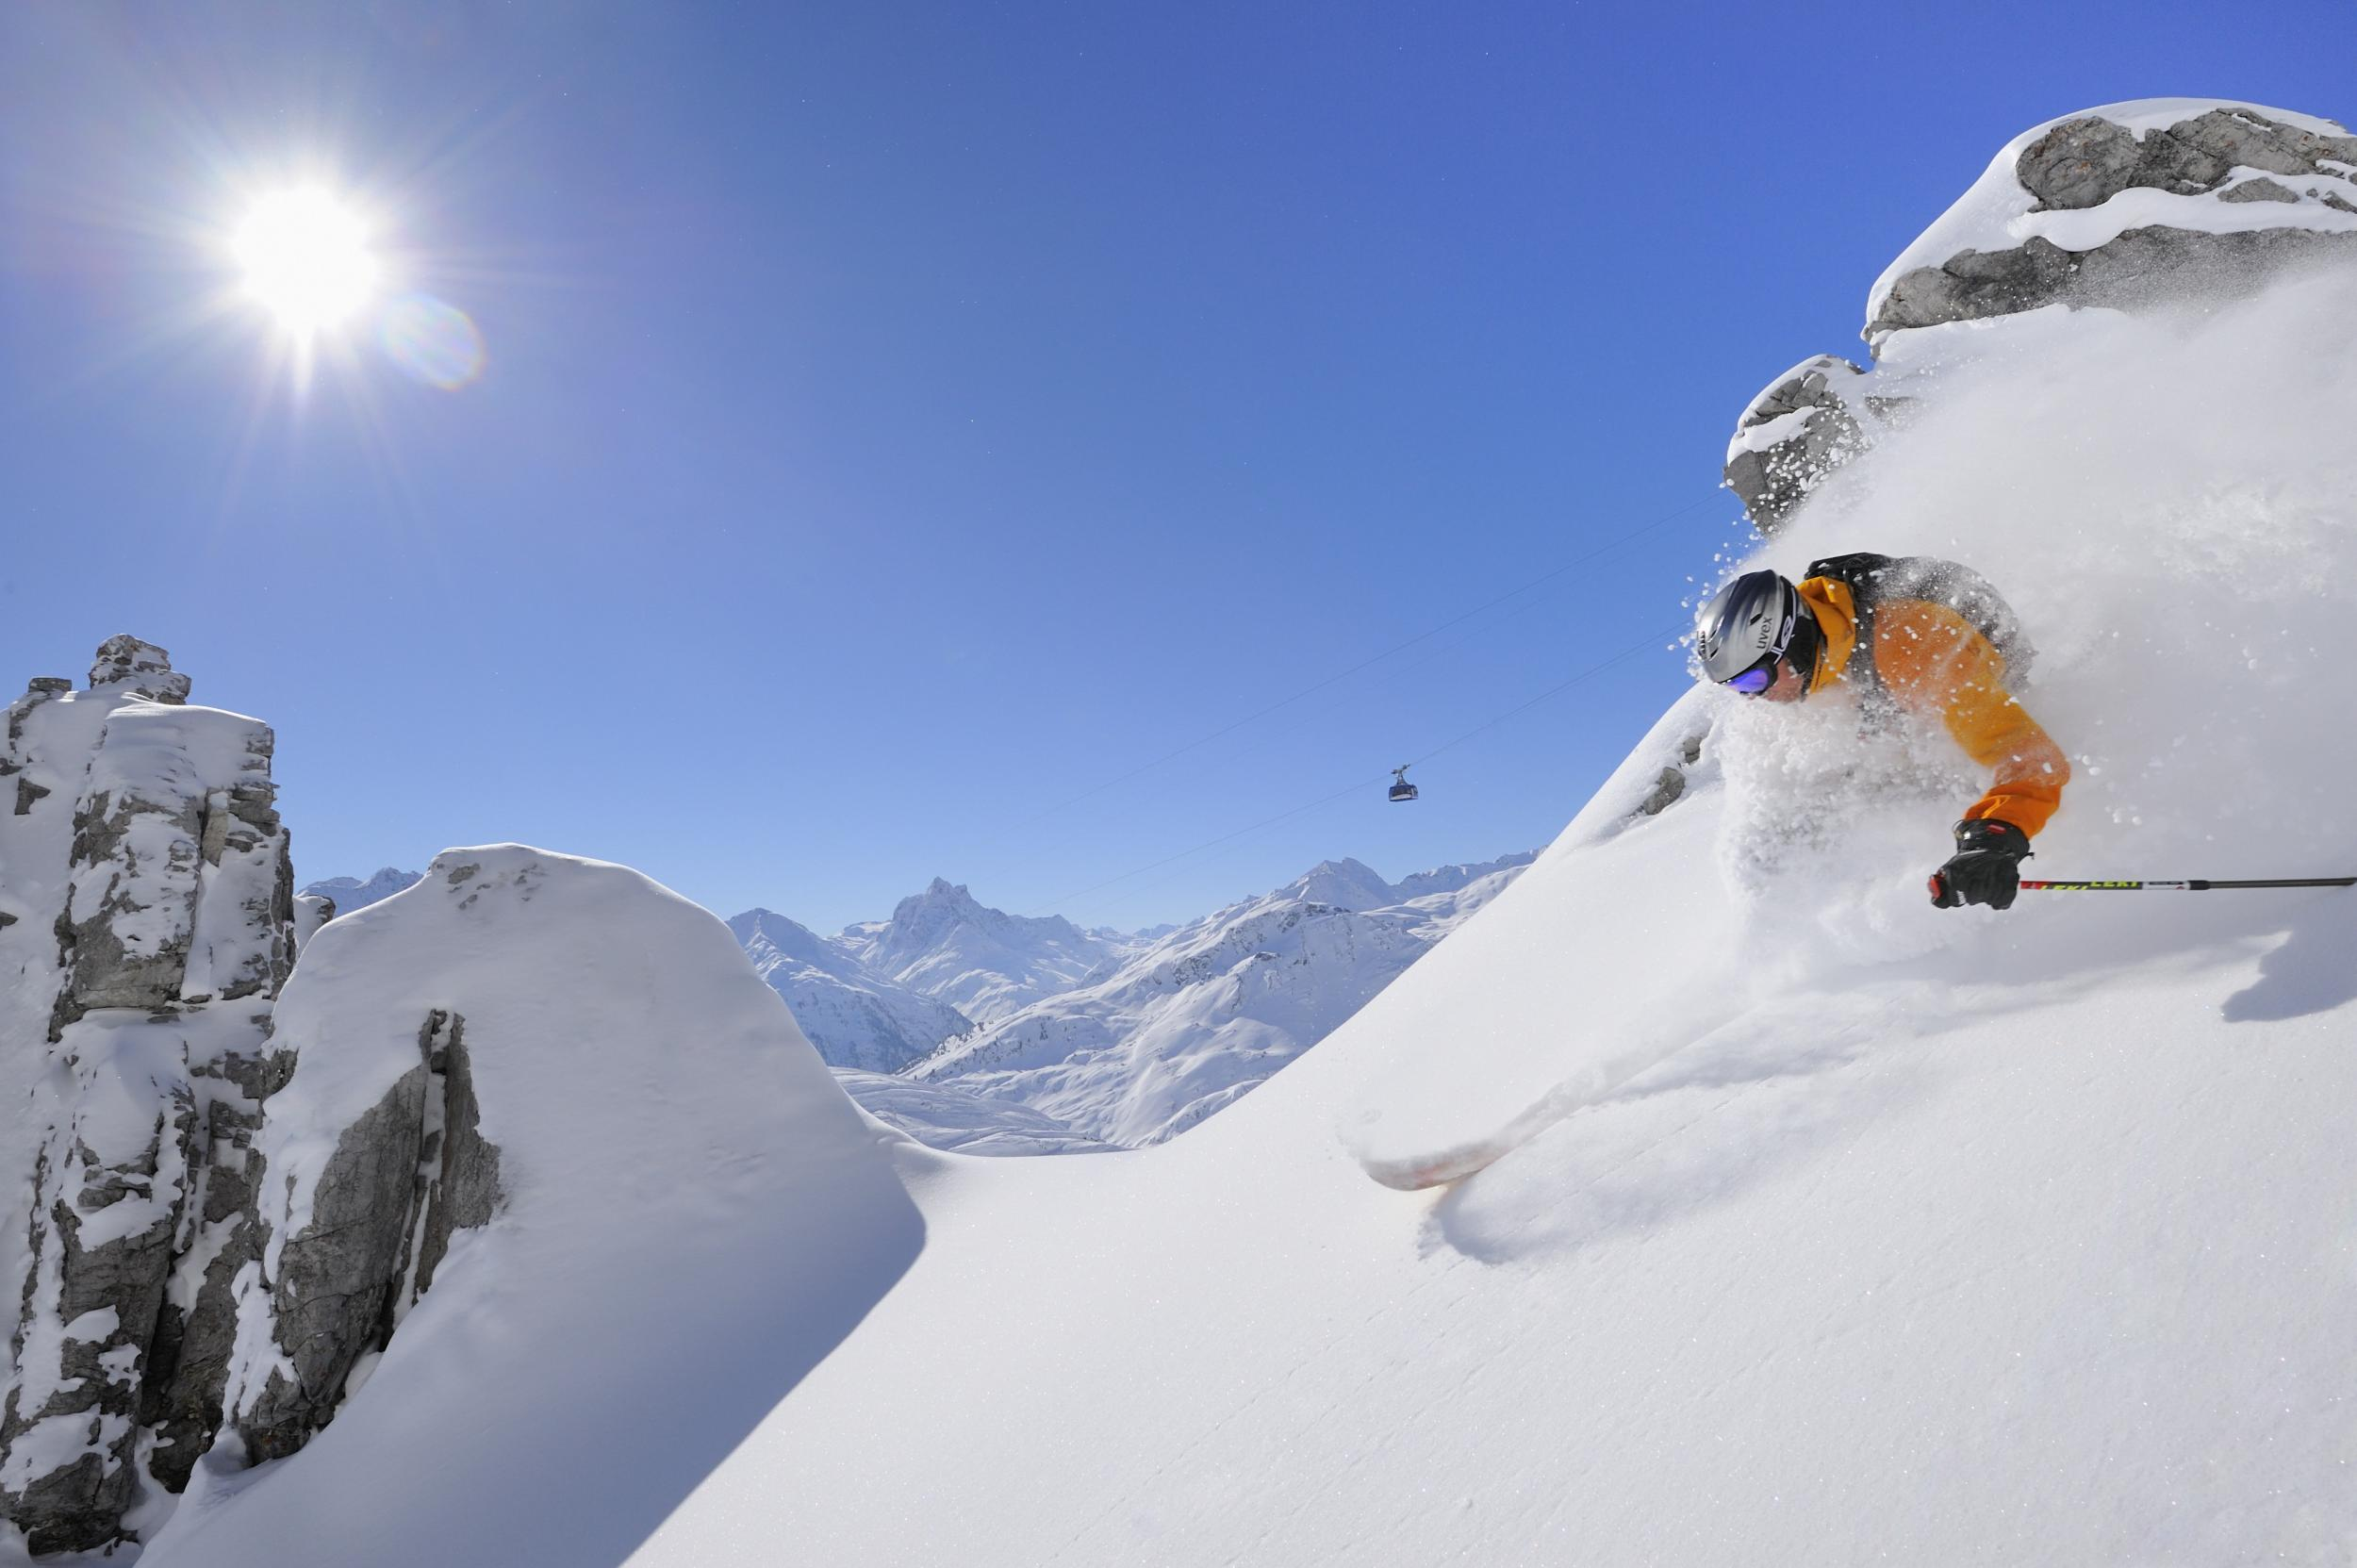 Cheap ski holidays: Best deals on a budget, from beginners to experts